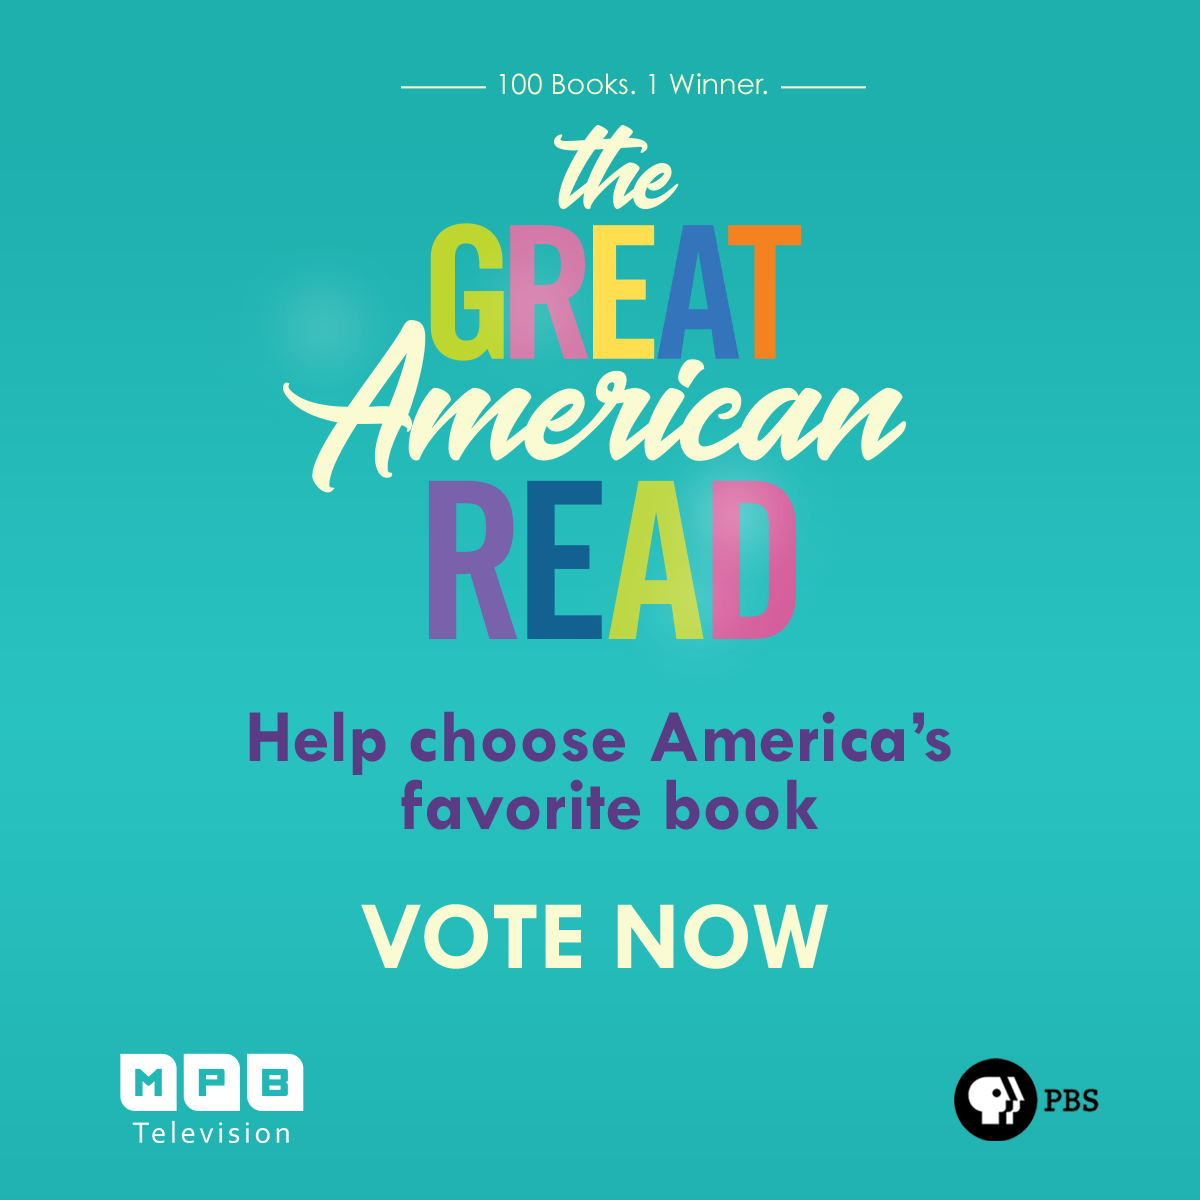 Vote for your favorite book during The Great American Read